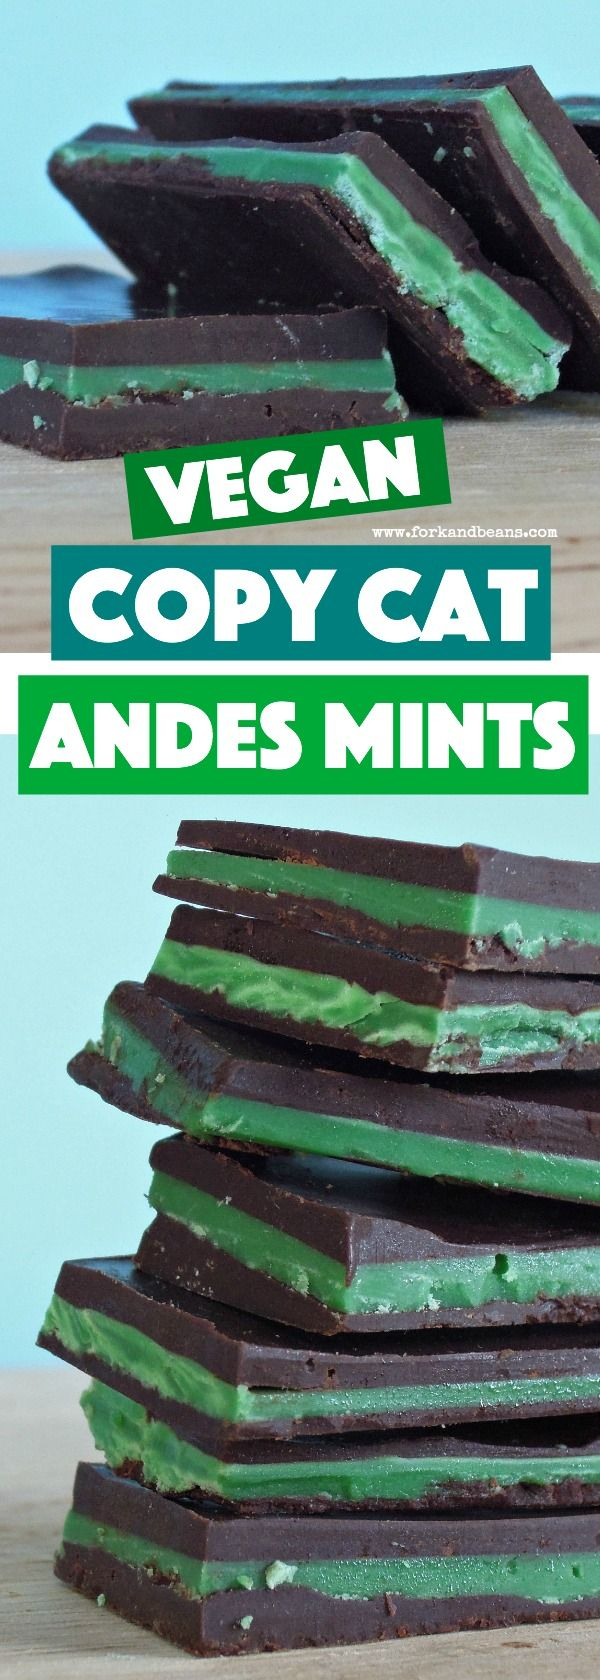 Just like the real deal, these copy cat vegan Andes Mints are a great dairy free treat when you are looking for that chocolate and mint combo!